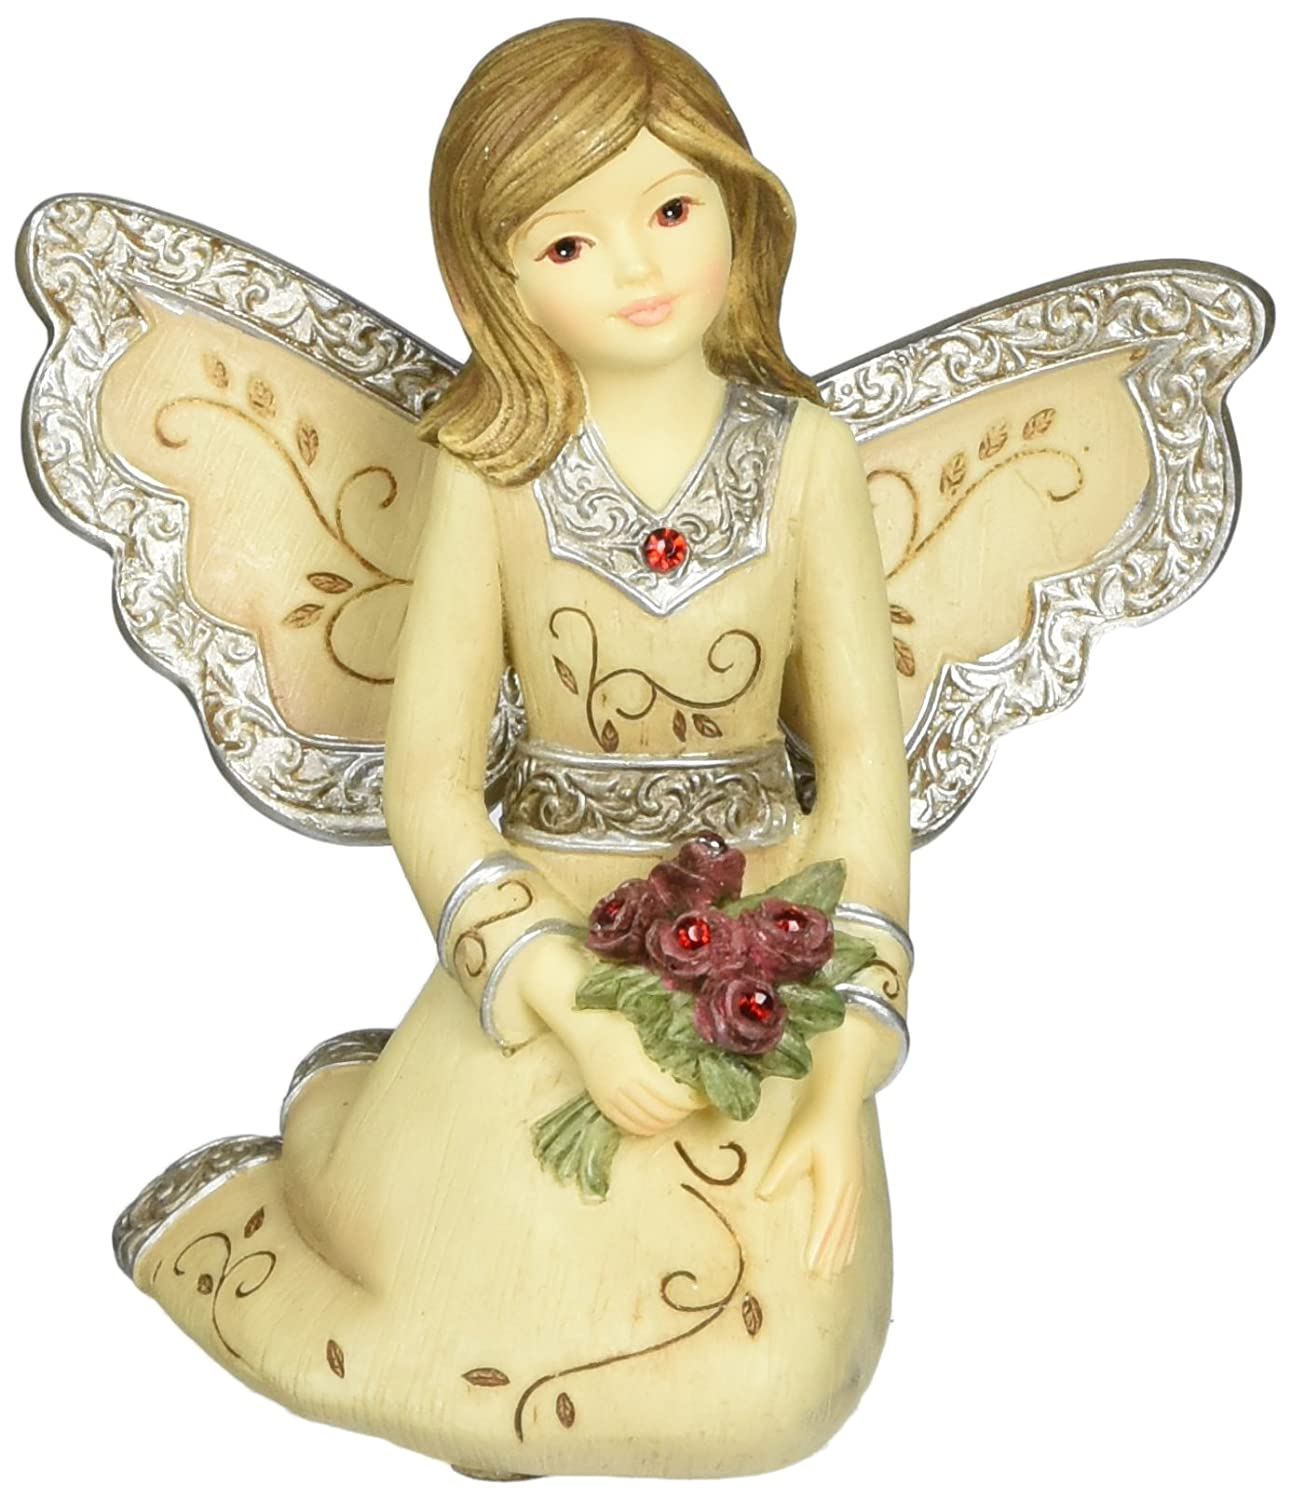 Elements January Monthly Angel Figurine, Includes Garnet Birthstone, 3-Inch